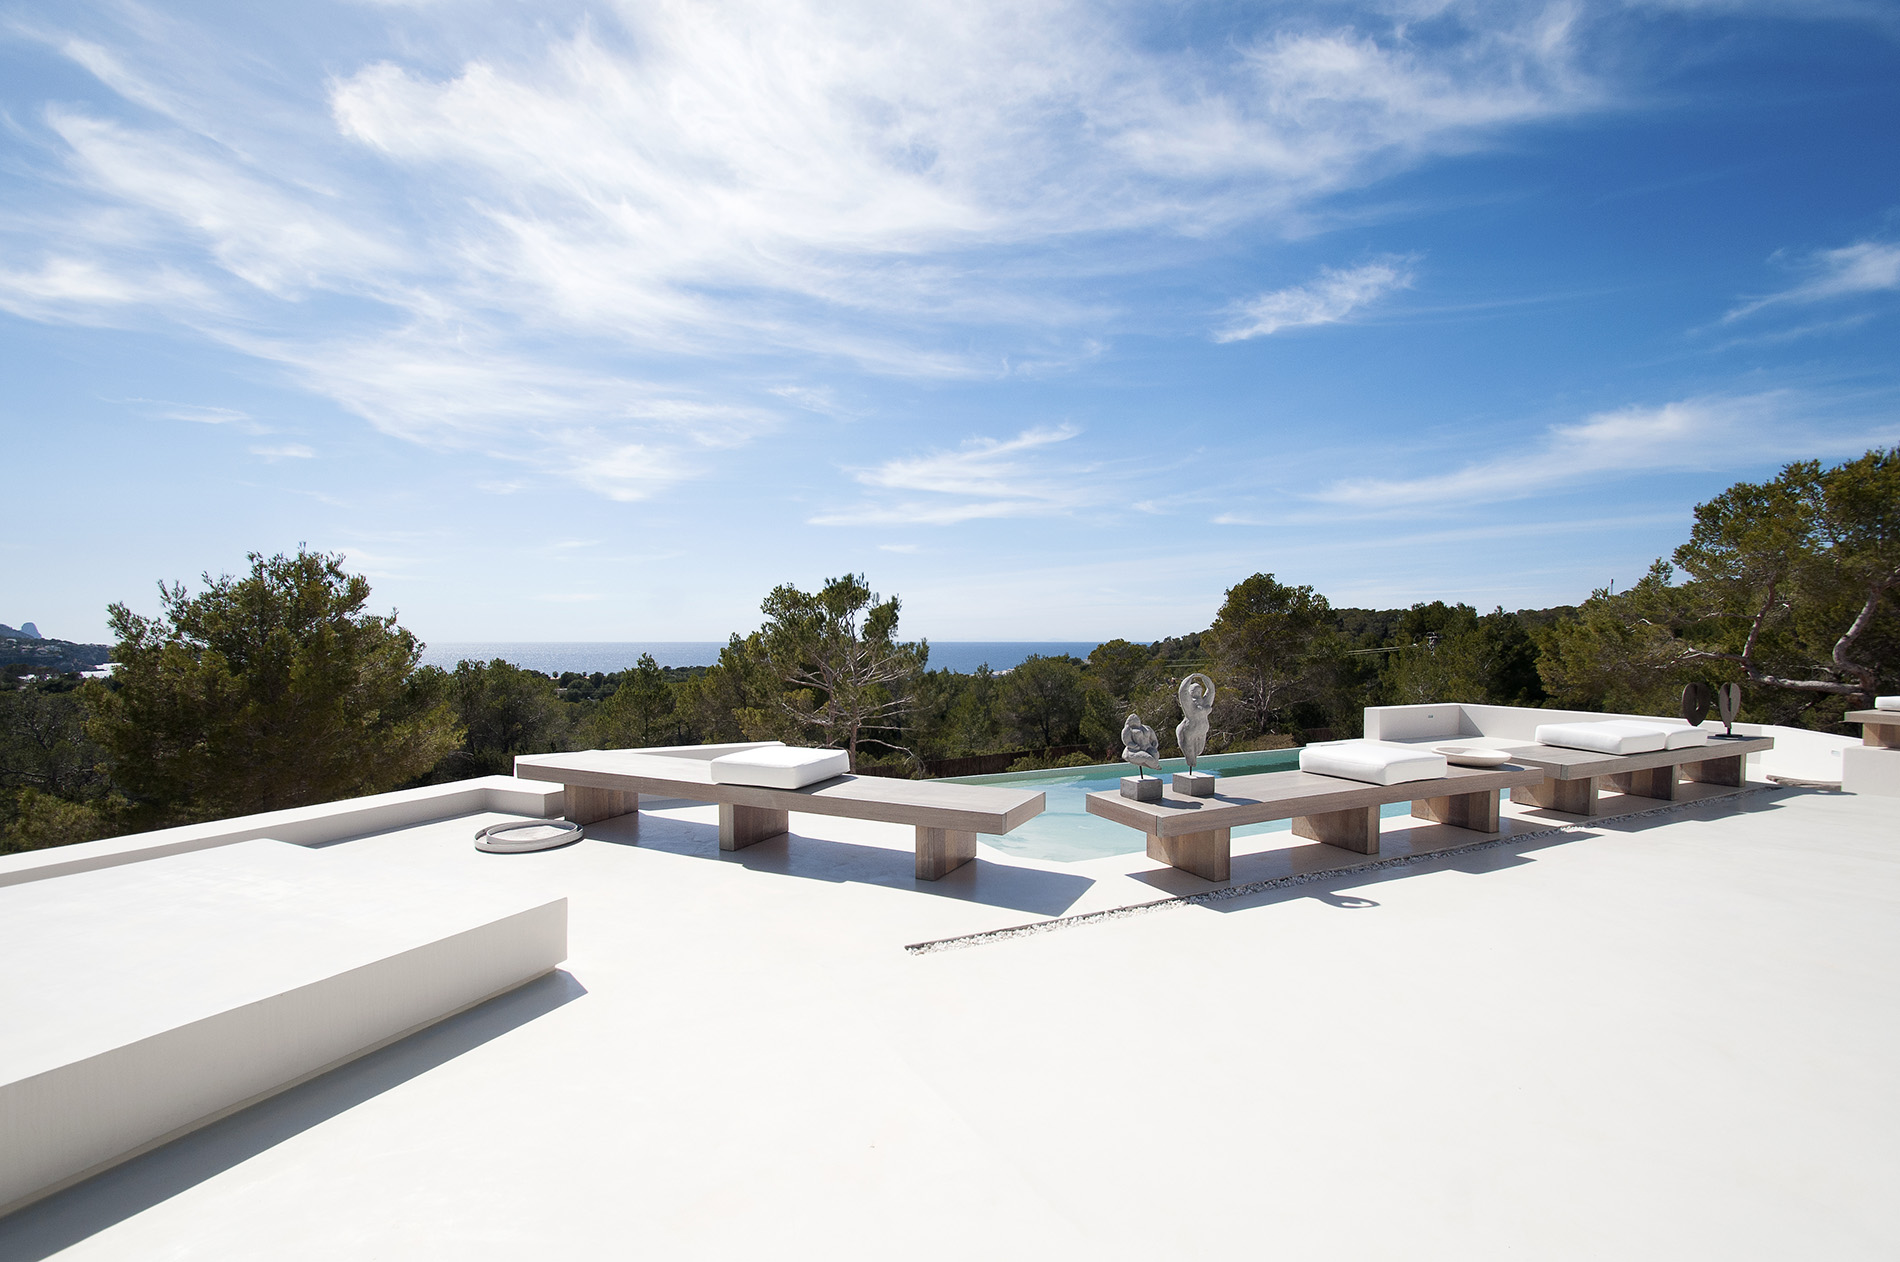 Maison unifamiliale pour l Vente à Designer Villa With Sea And Sunset Views Ibiza Sant Josep, Ibiza, 07830 Espagne